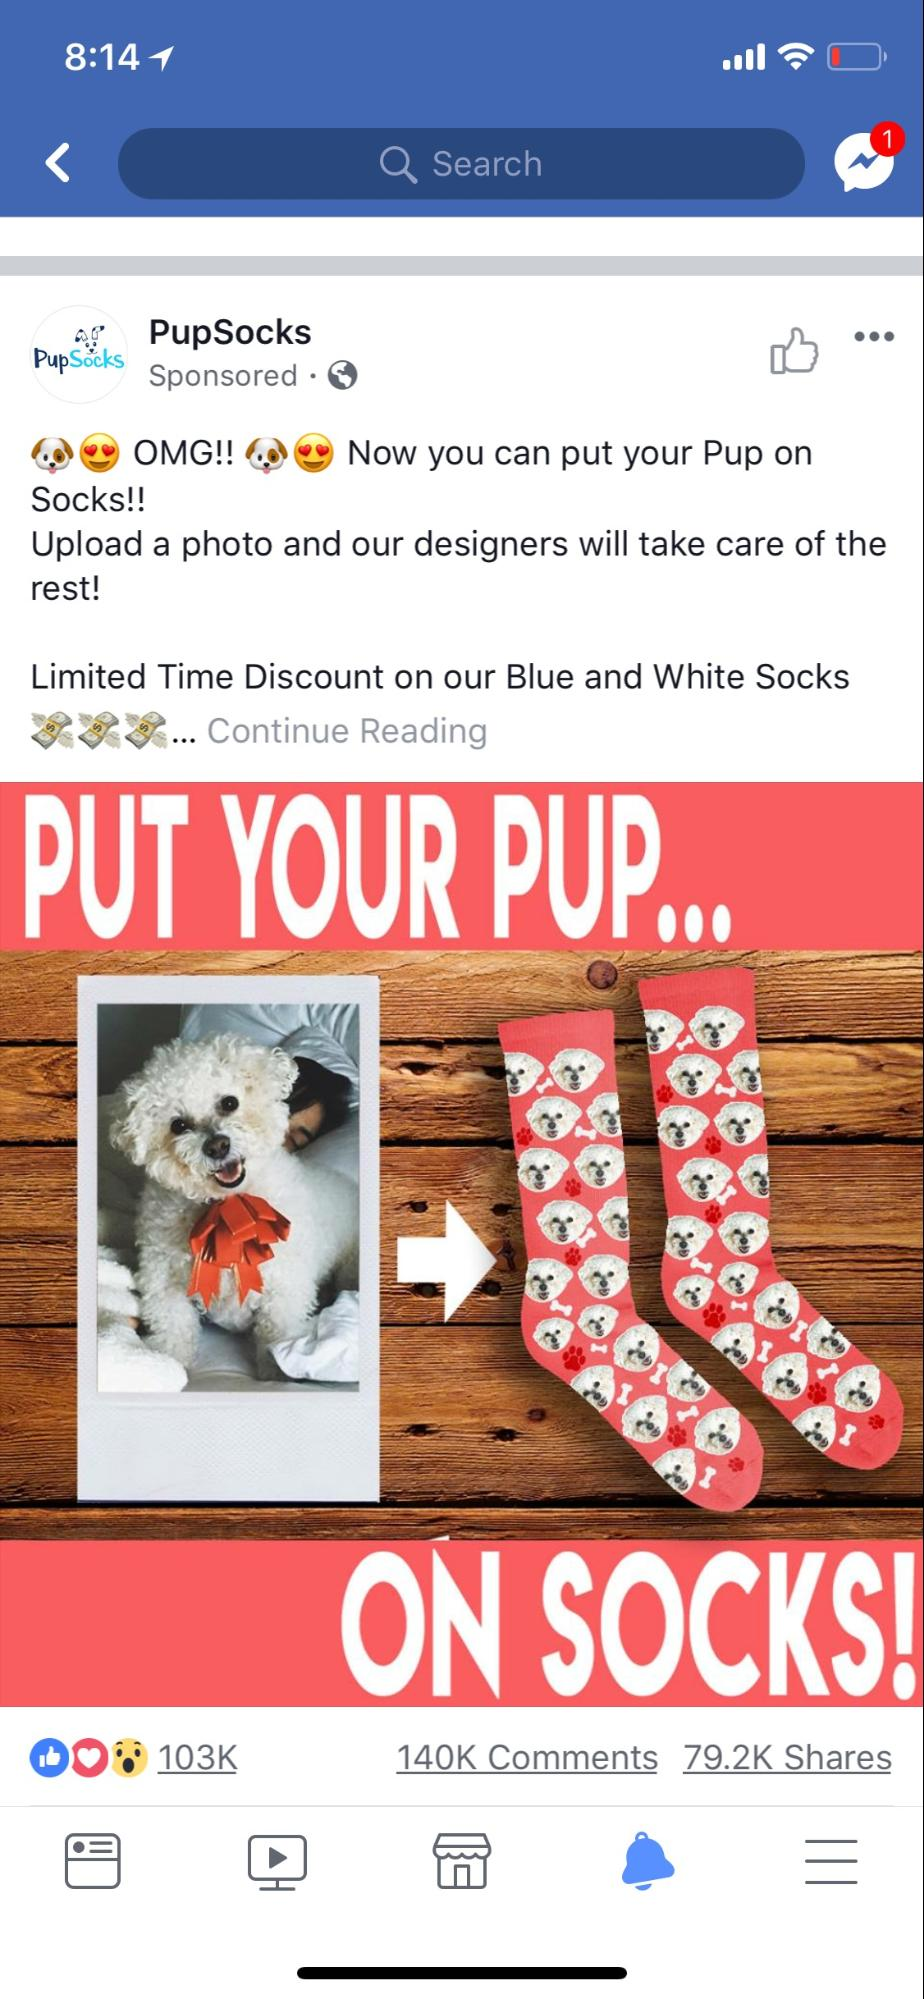 pup-socks-facebook-ad